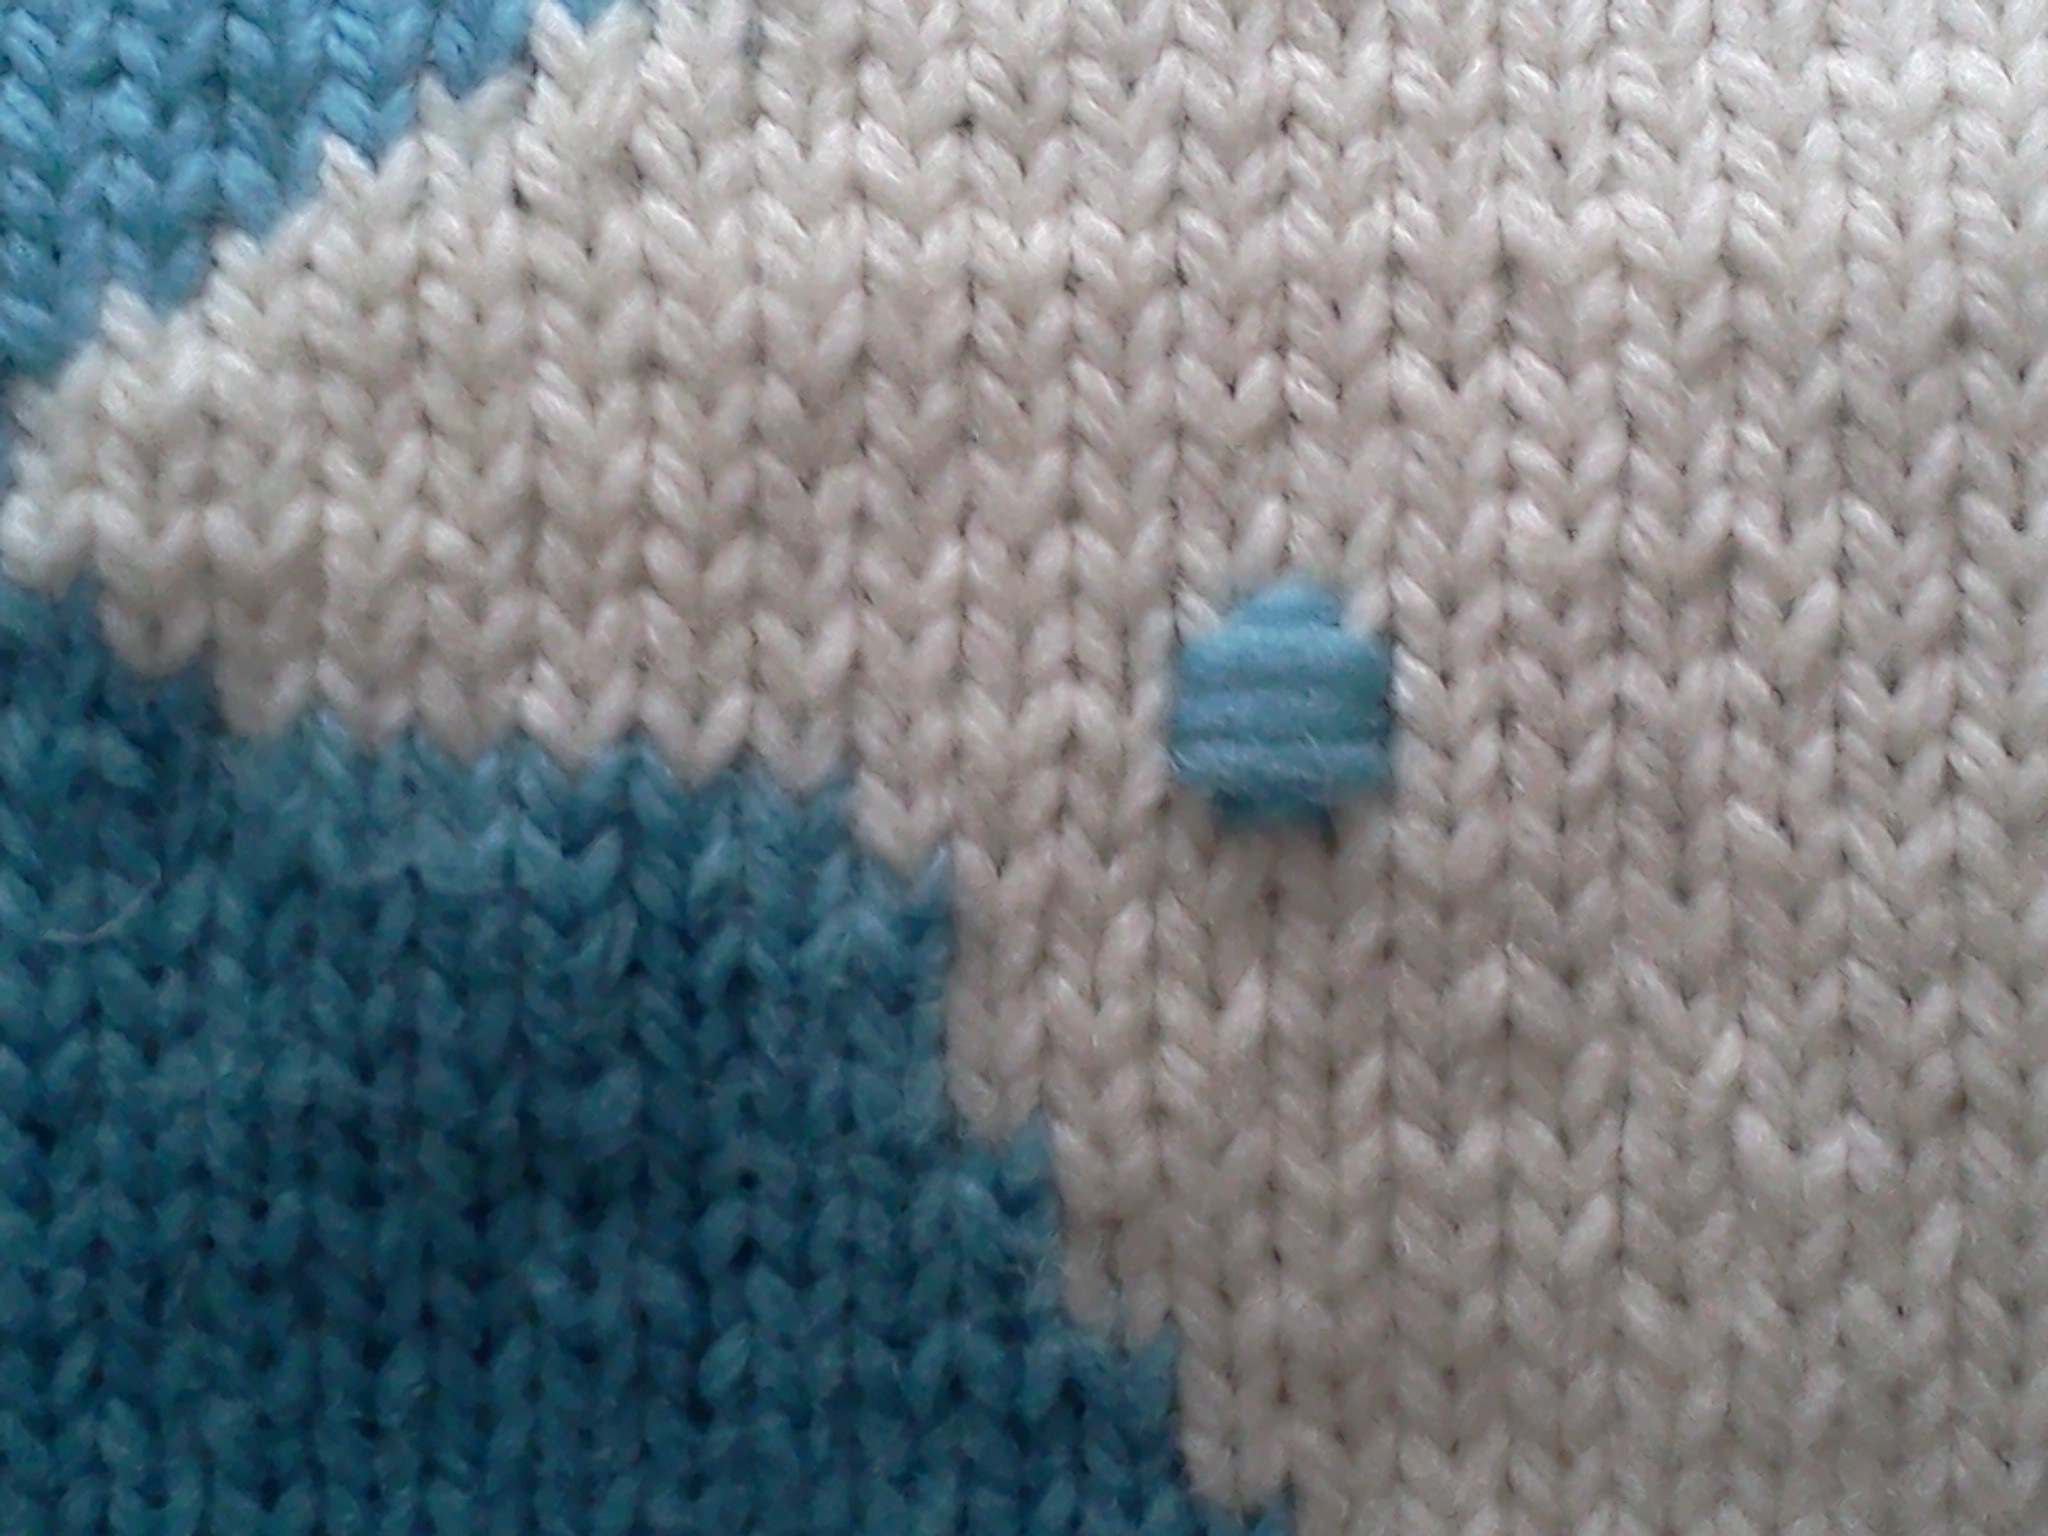 Herdy Cushion Knitting Pattern : Support for Herdy designs by Janice Anderson The Auld (Woolly) Alliance